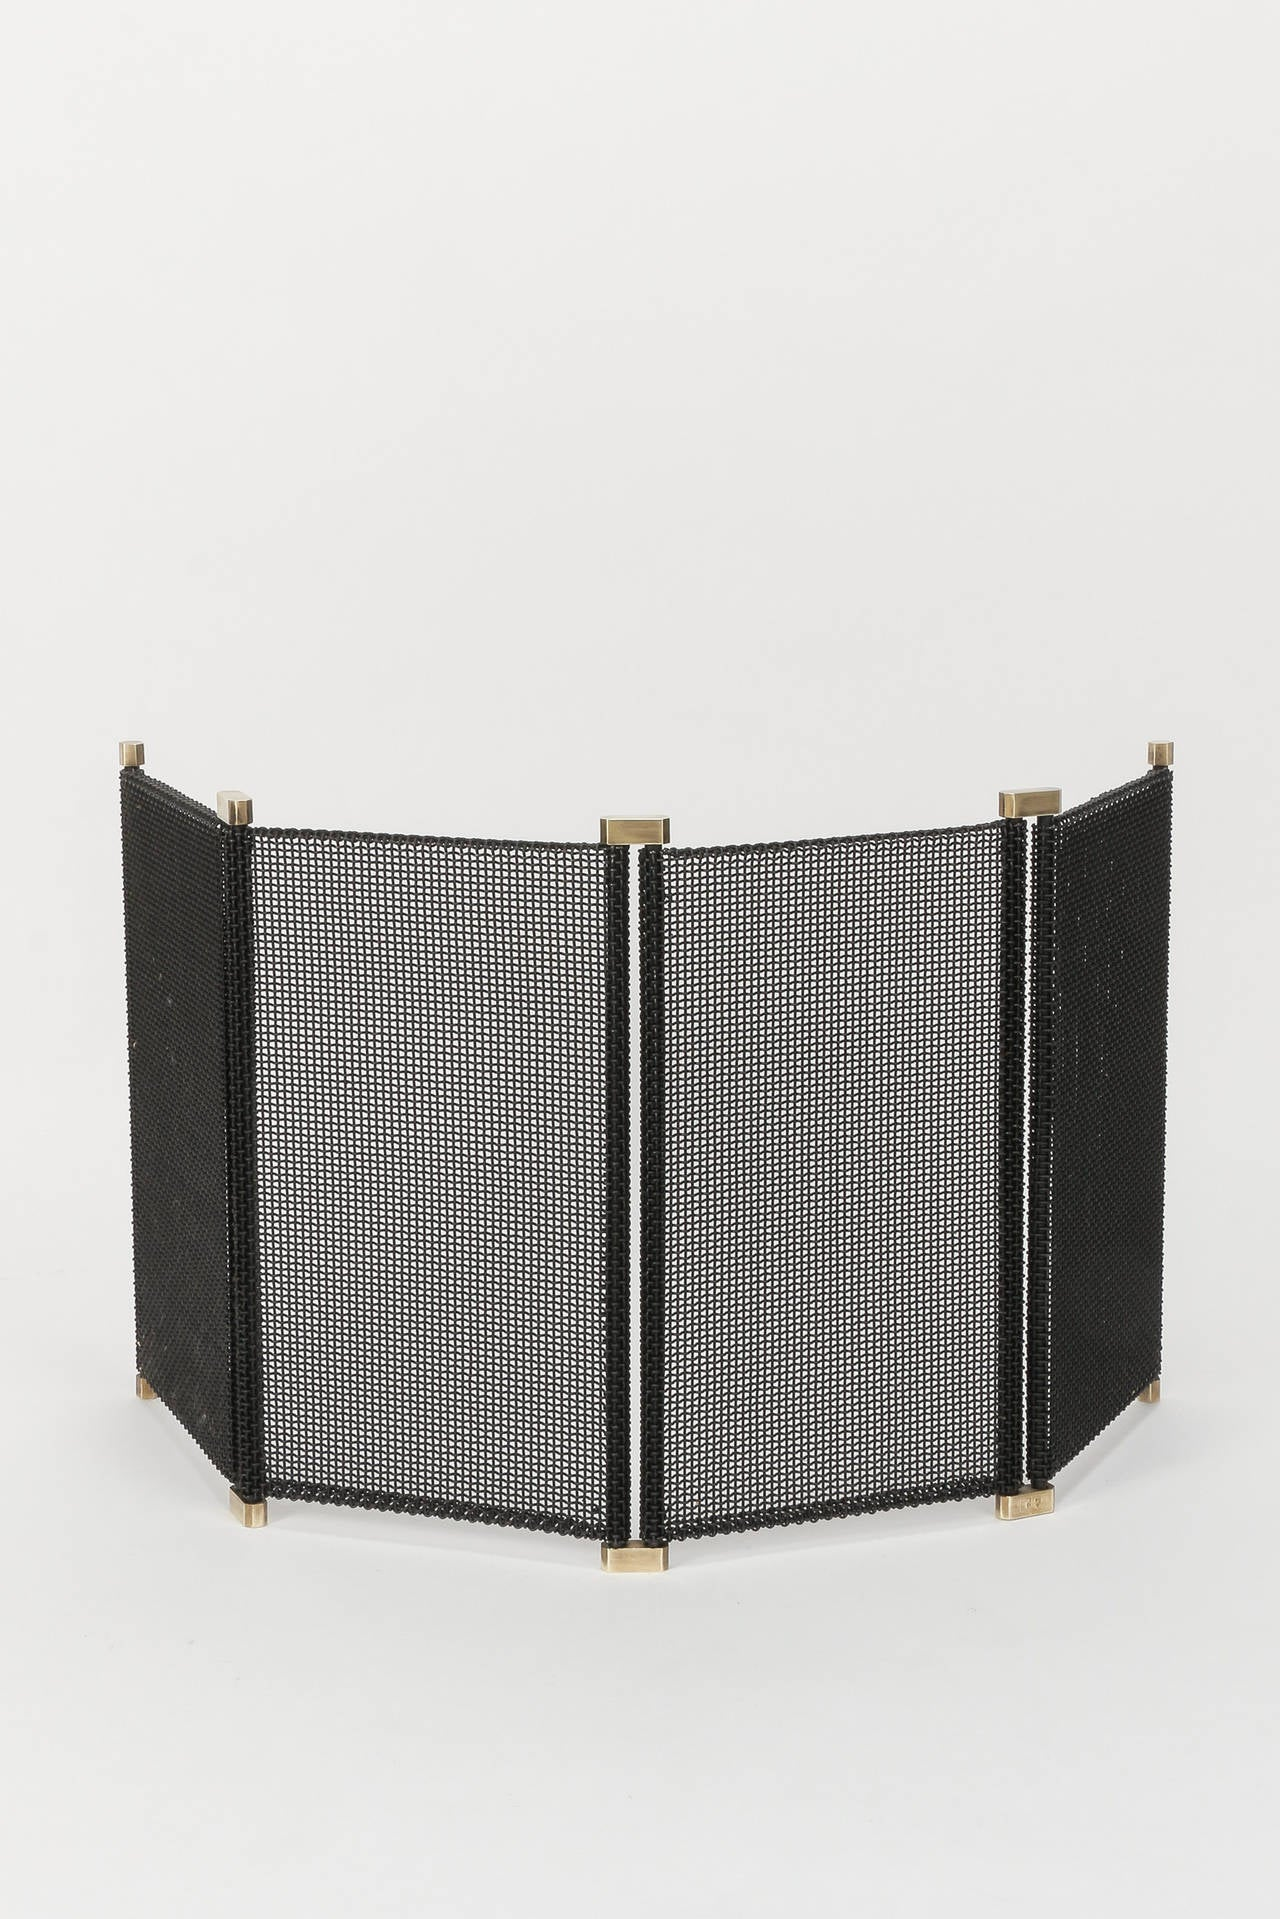 Italian Fireplace Set by Tobia and Afra Scarpa Carrier at ...